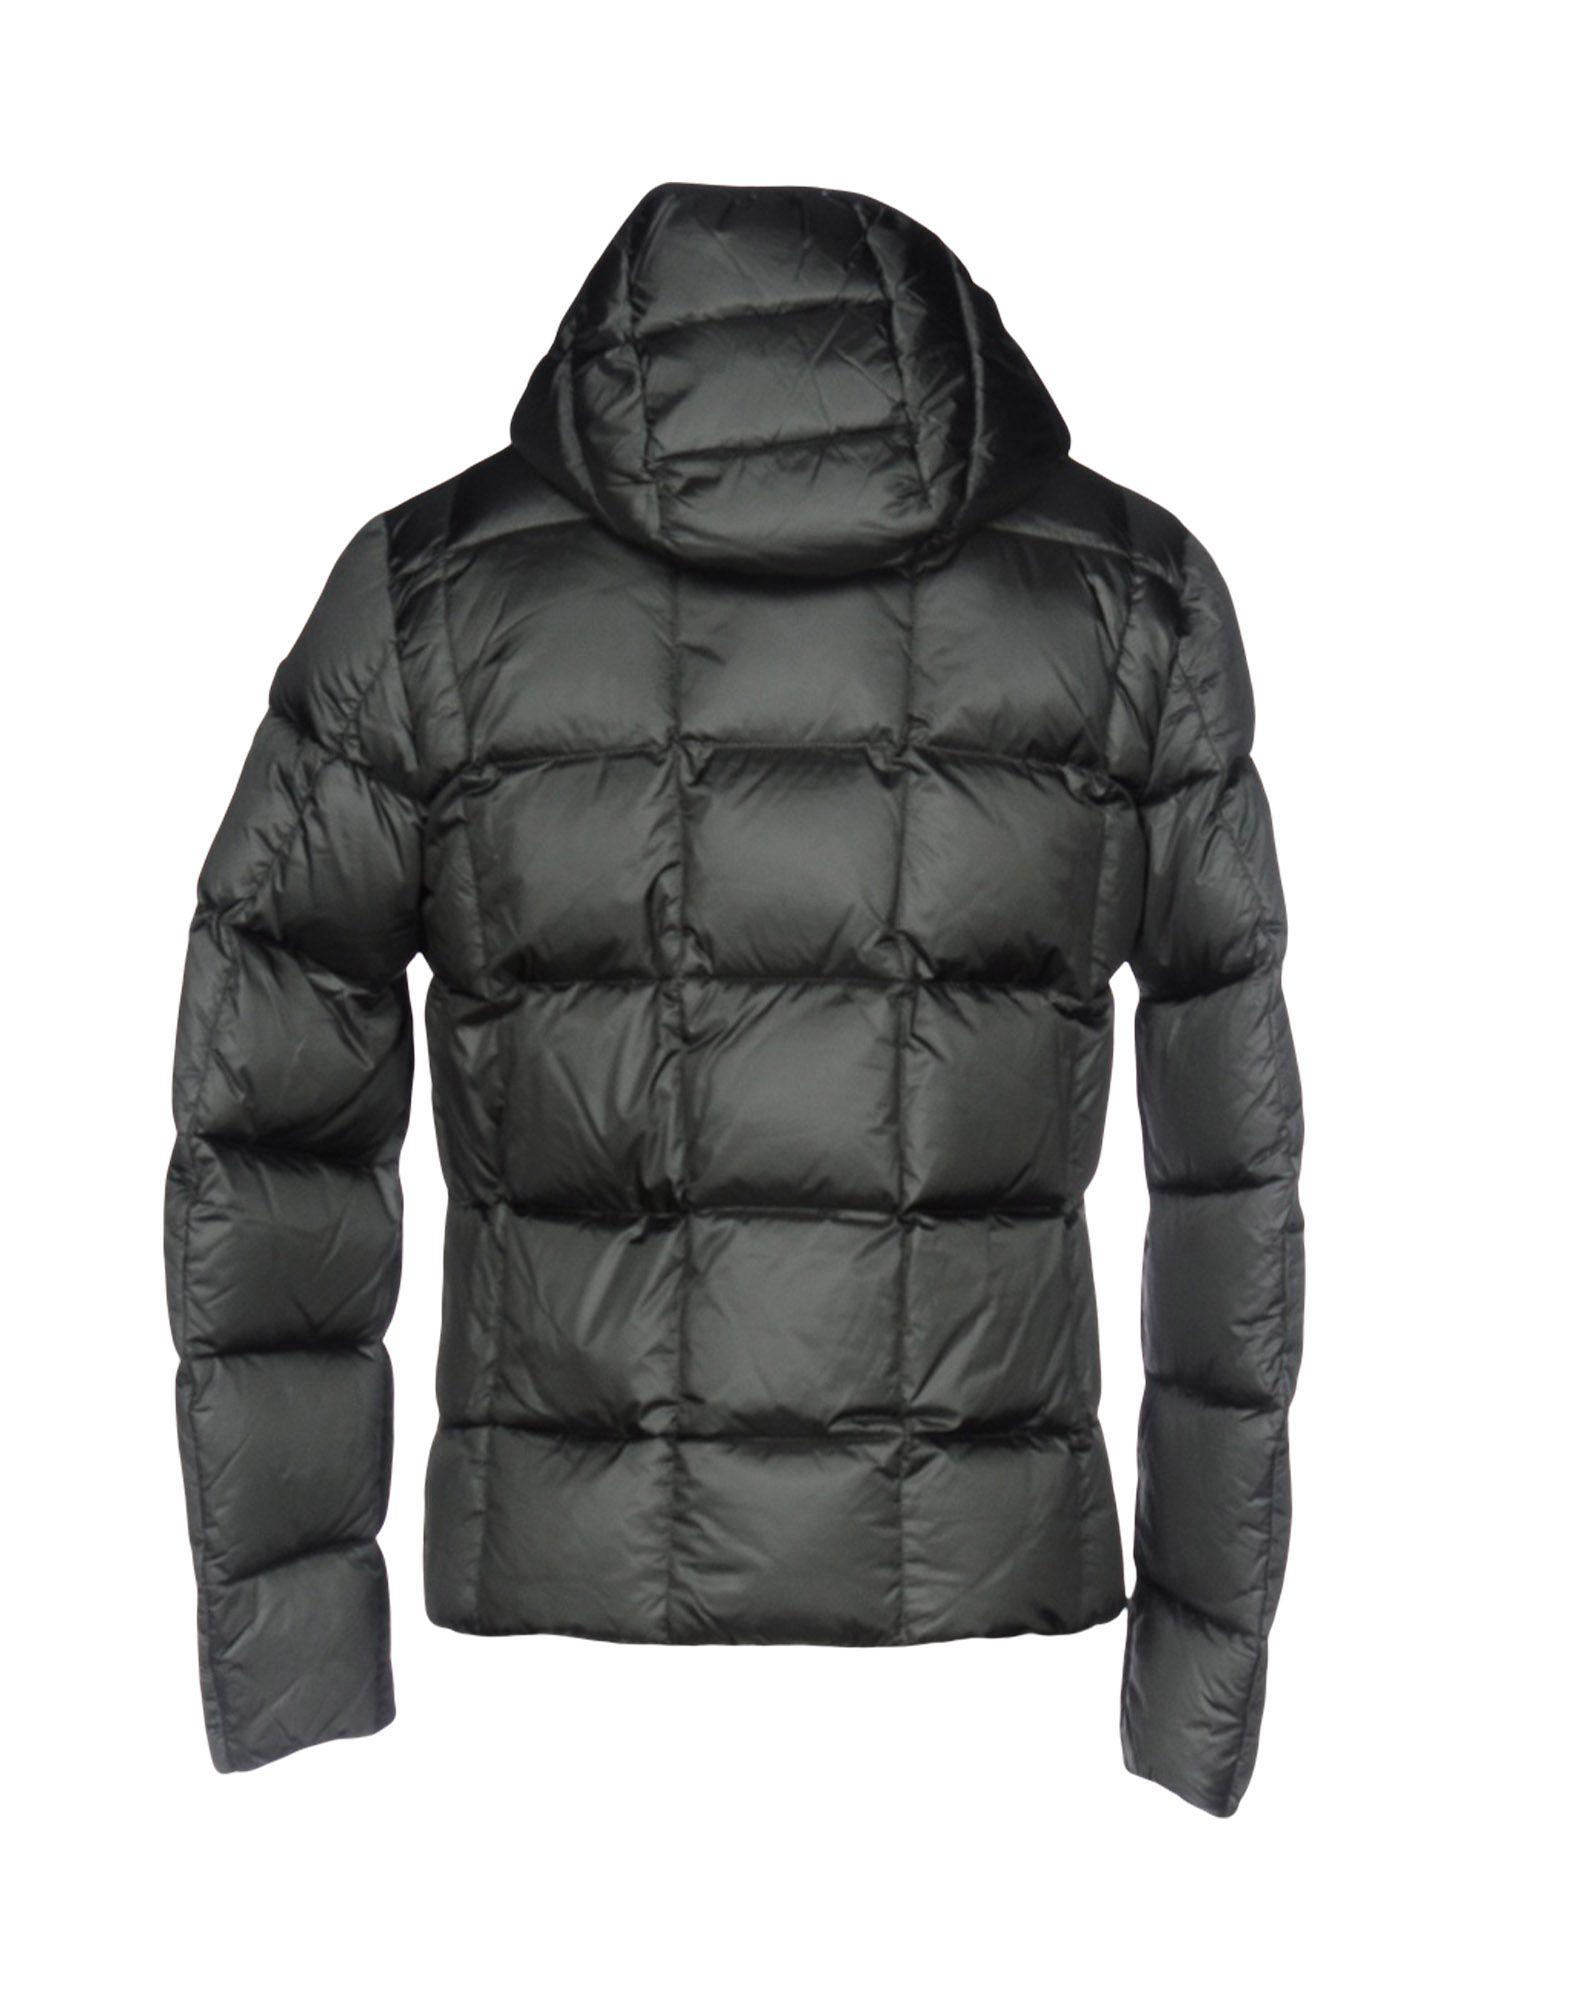 313 Tre Uno Tre Synthetic Down Jacket in Dark Green (Green) for Men